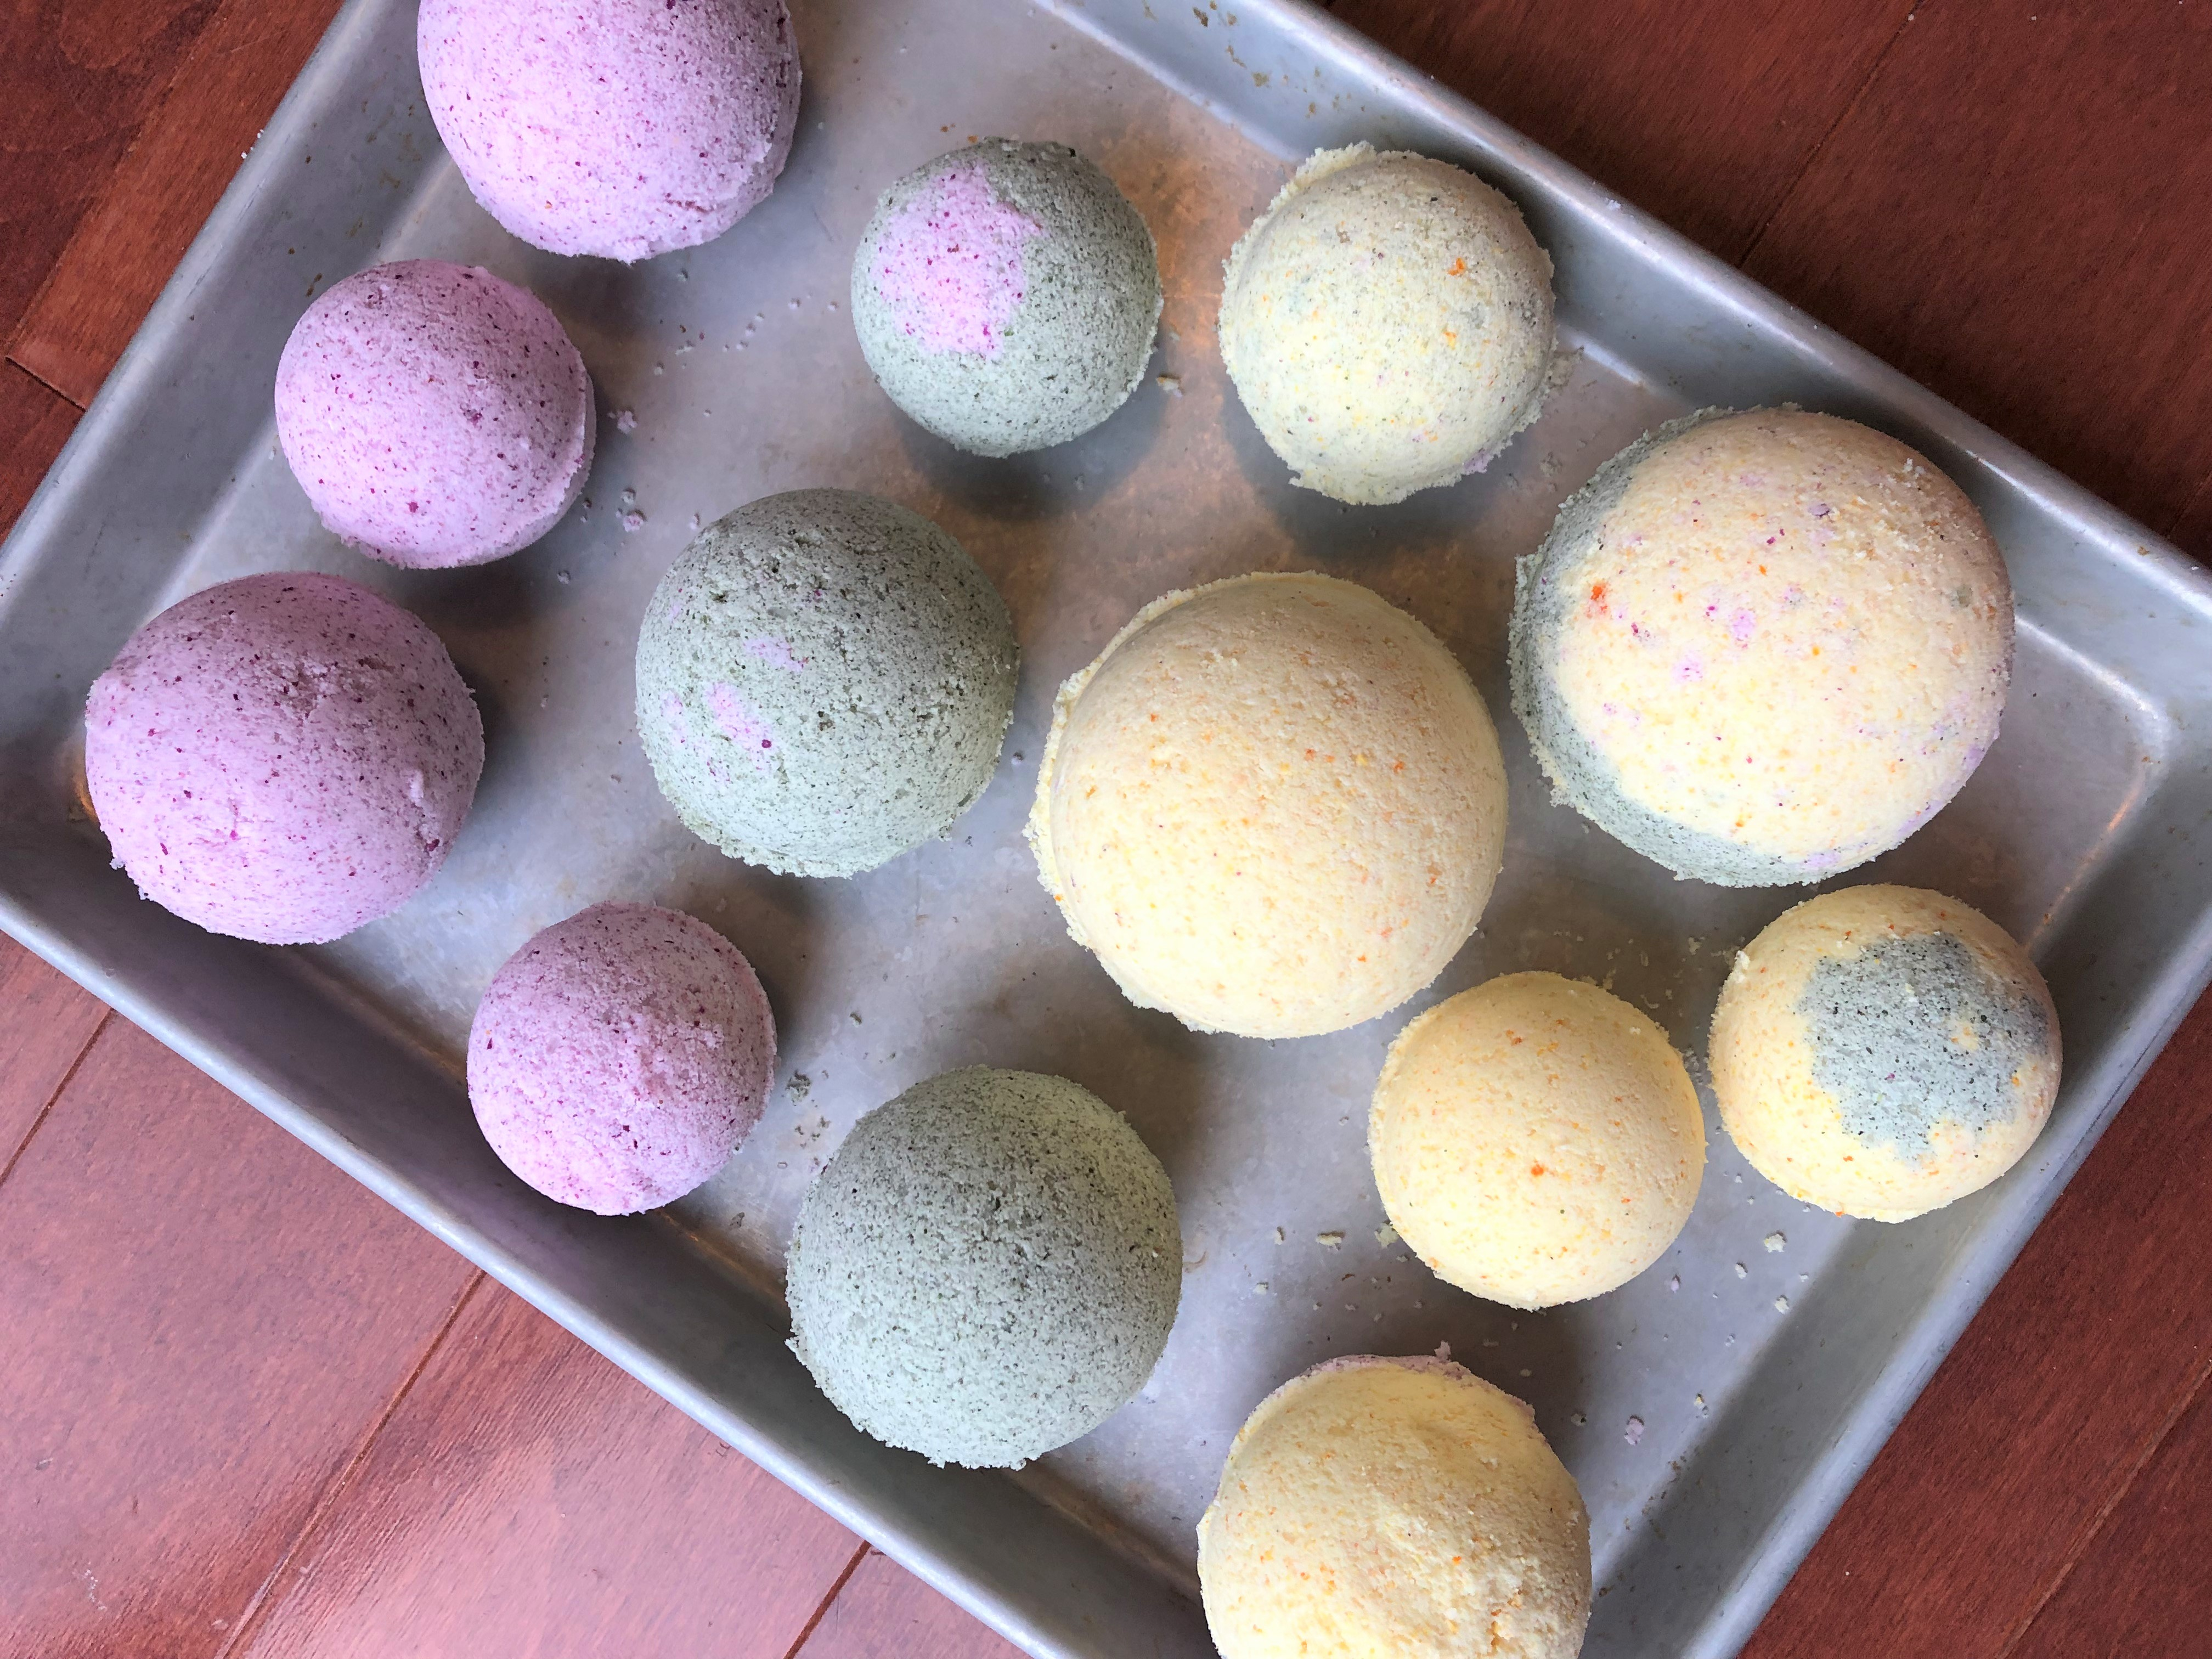 homemade bath bombs with plant-derived pigments